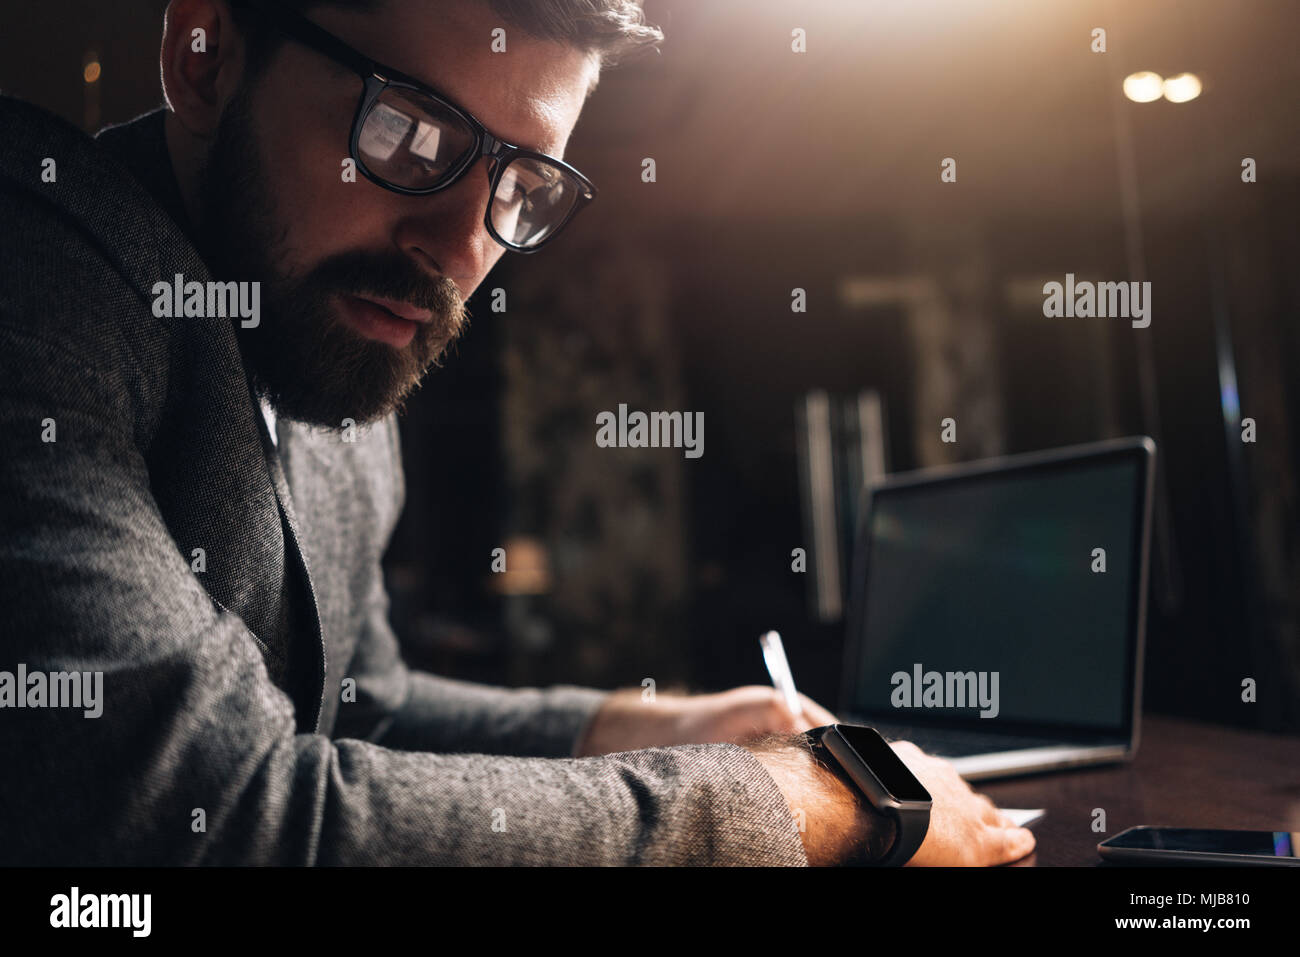 Close-up portrait of bearded man wearing eye glasses and smartwatch at night coworking loft space. Young creative manager looking away. Businessman us - Stock Image